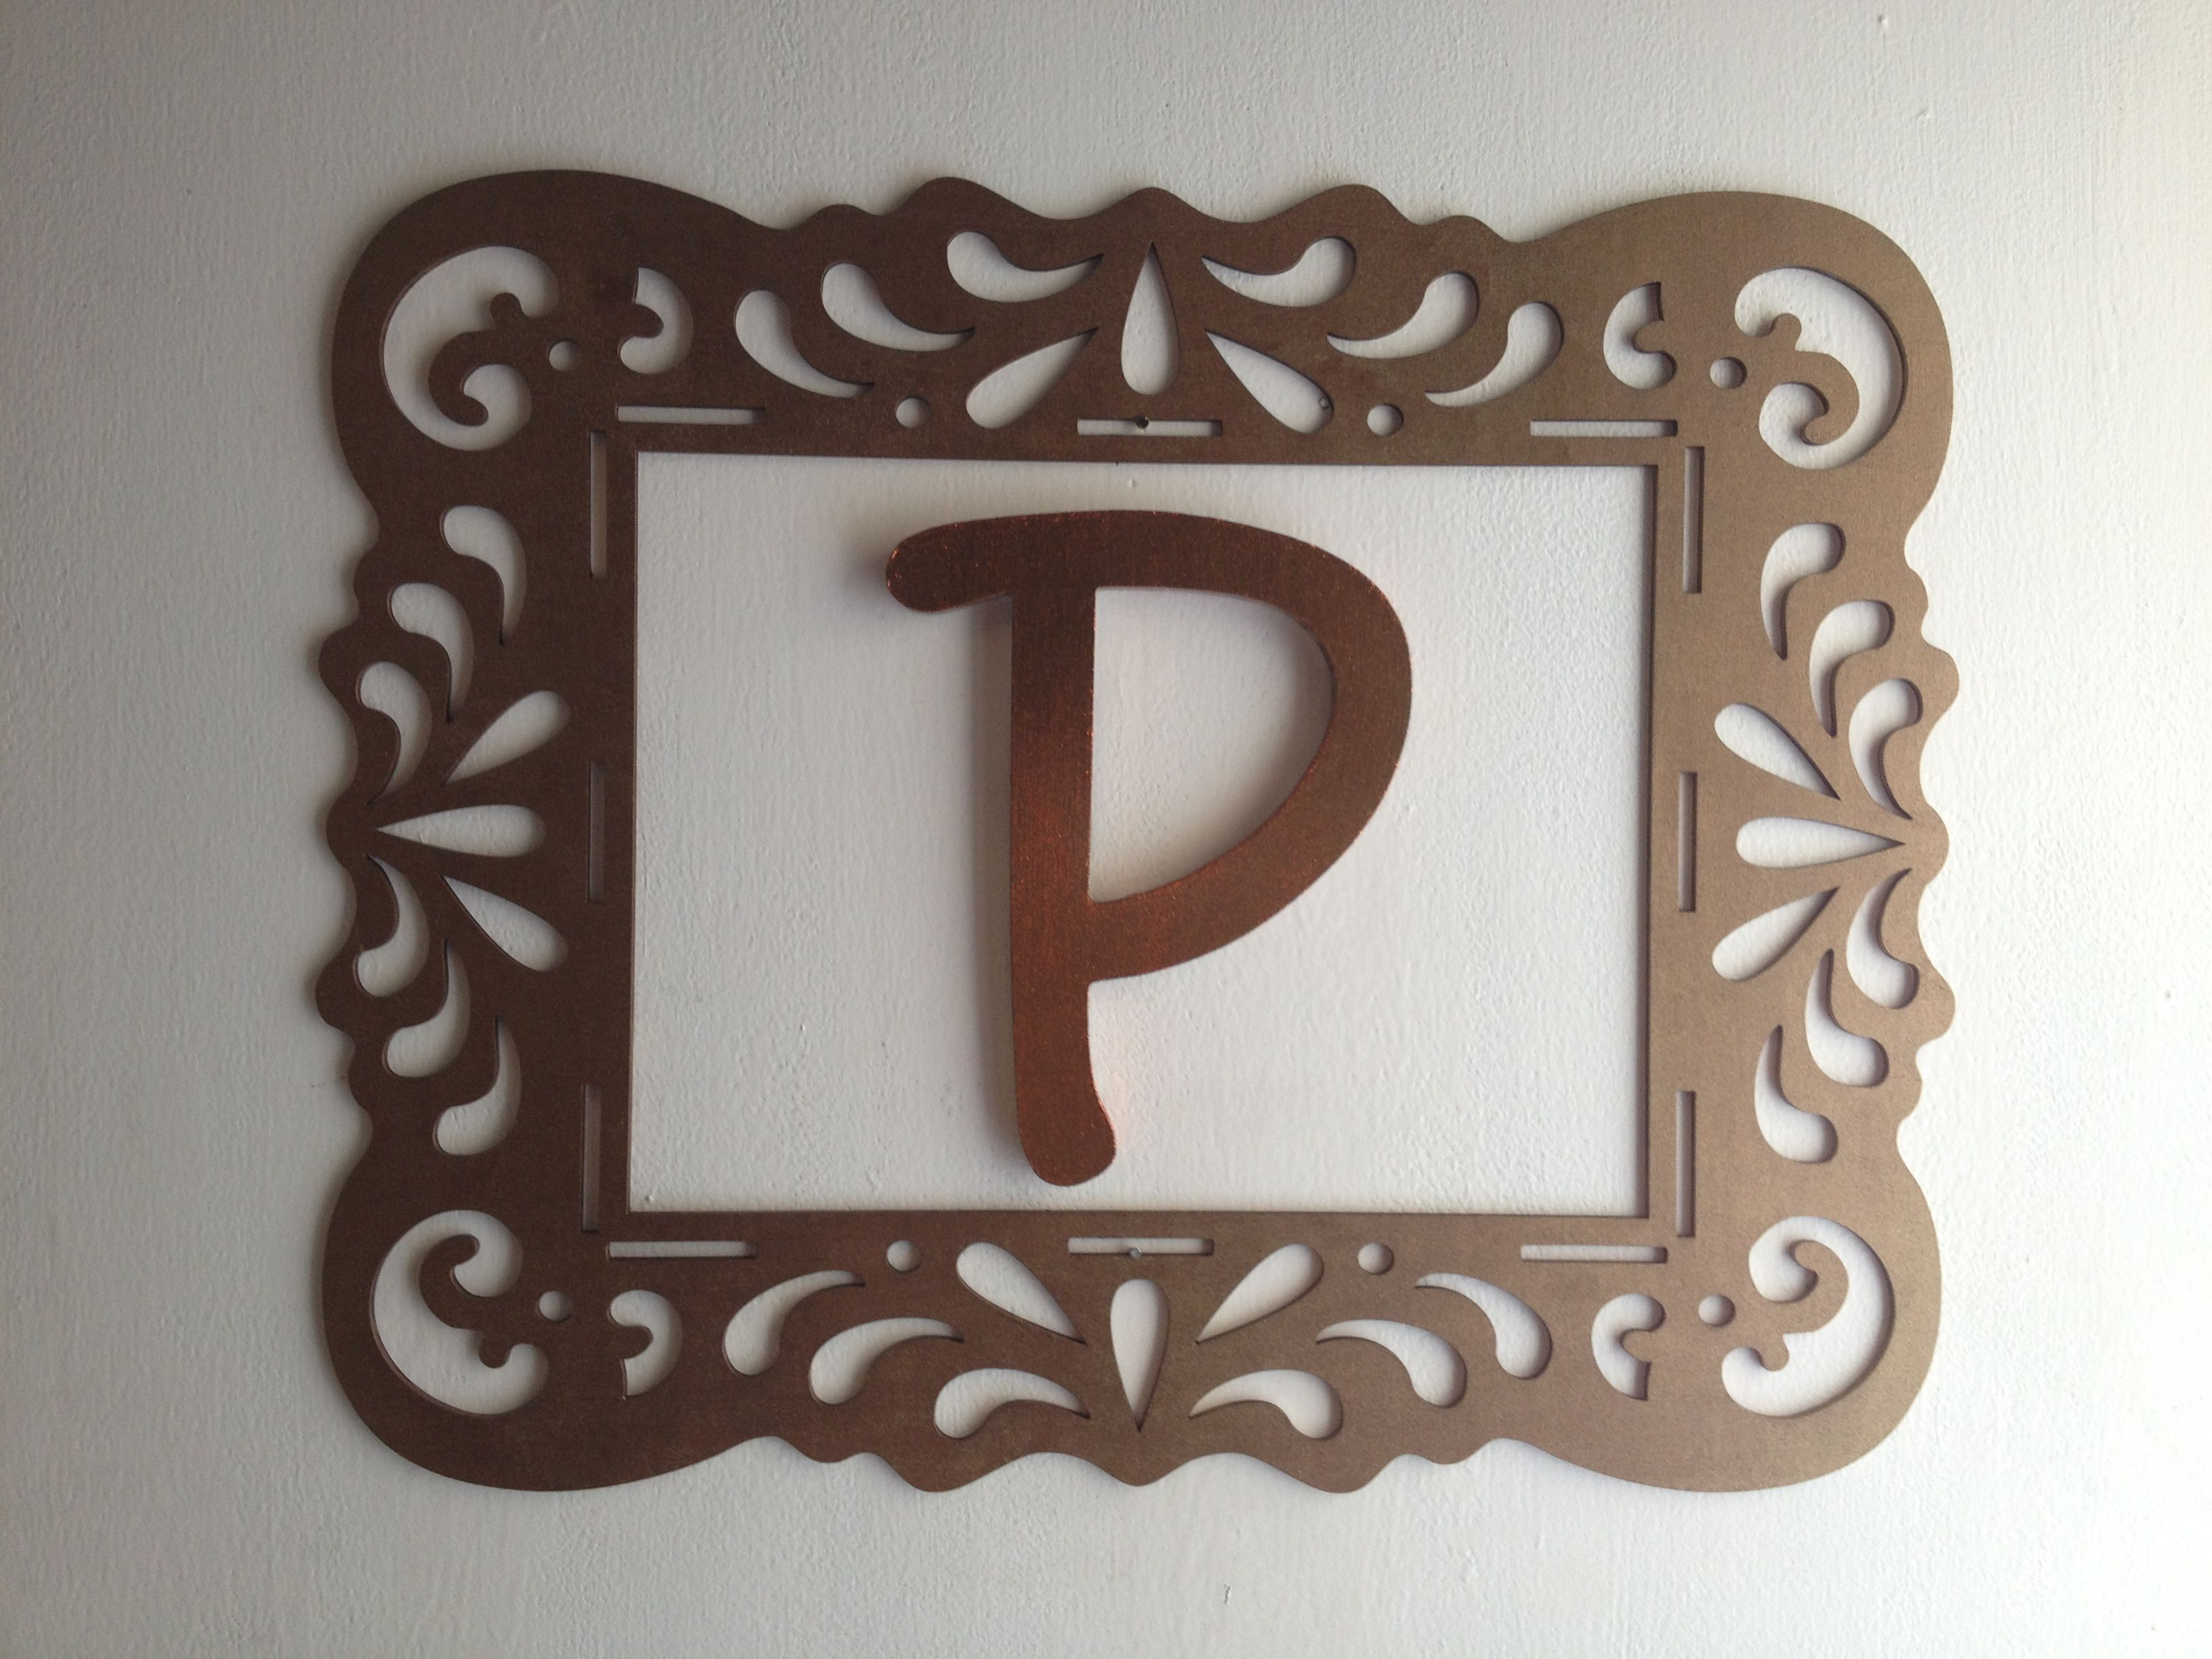 Flat Wooden Frame & Wooden Letter From Michaels Painted With